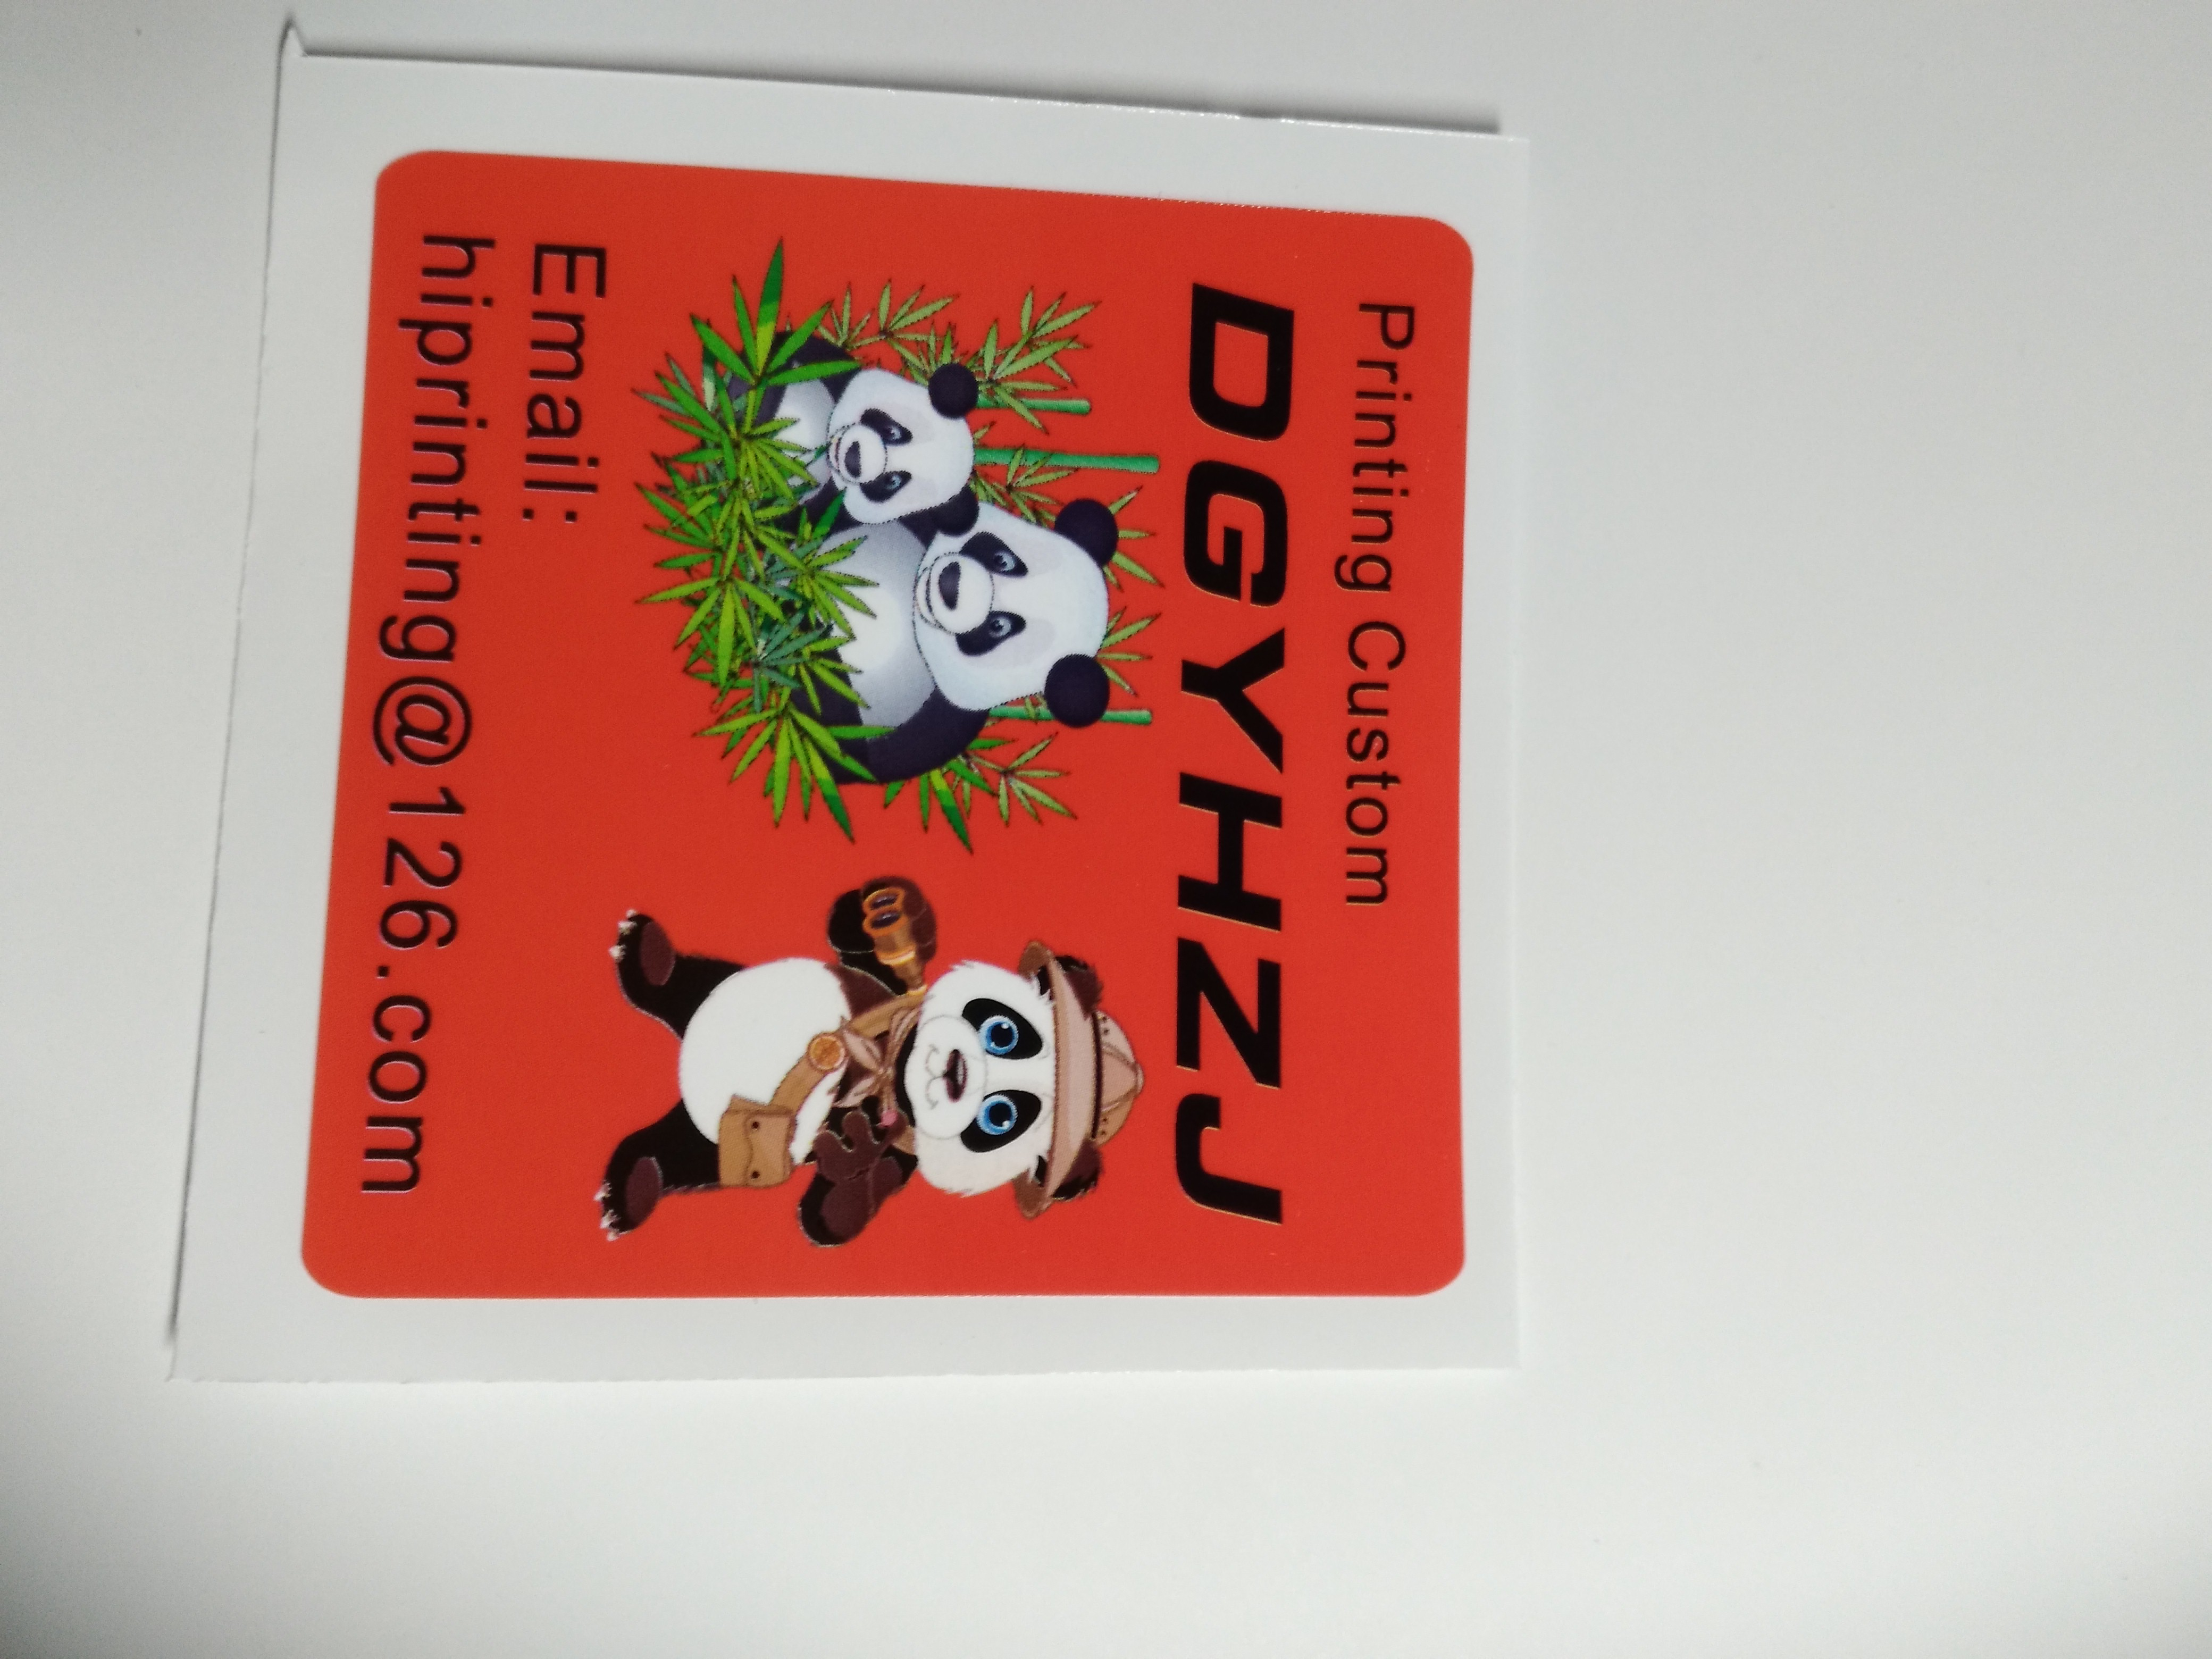 sticker dimension is 7 25 inches width 2 75 height sticker printing 2 designs each 200pcs